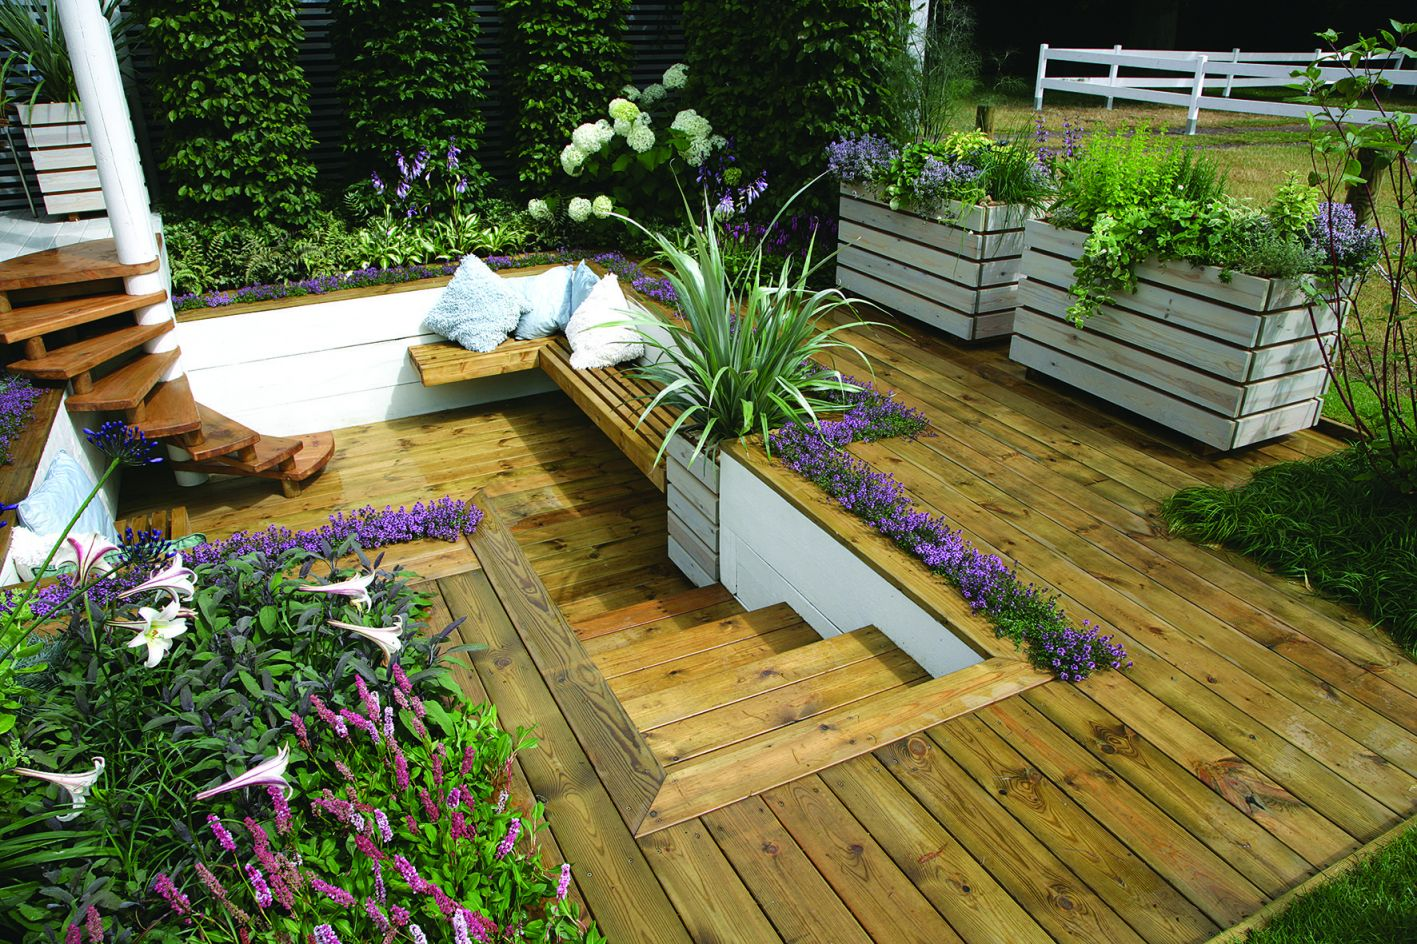 Awesome Decking Ideas For Sloping Garden - GARDENIDEAZ.COM on Decking Ideas For Sloping Garden id=56997